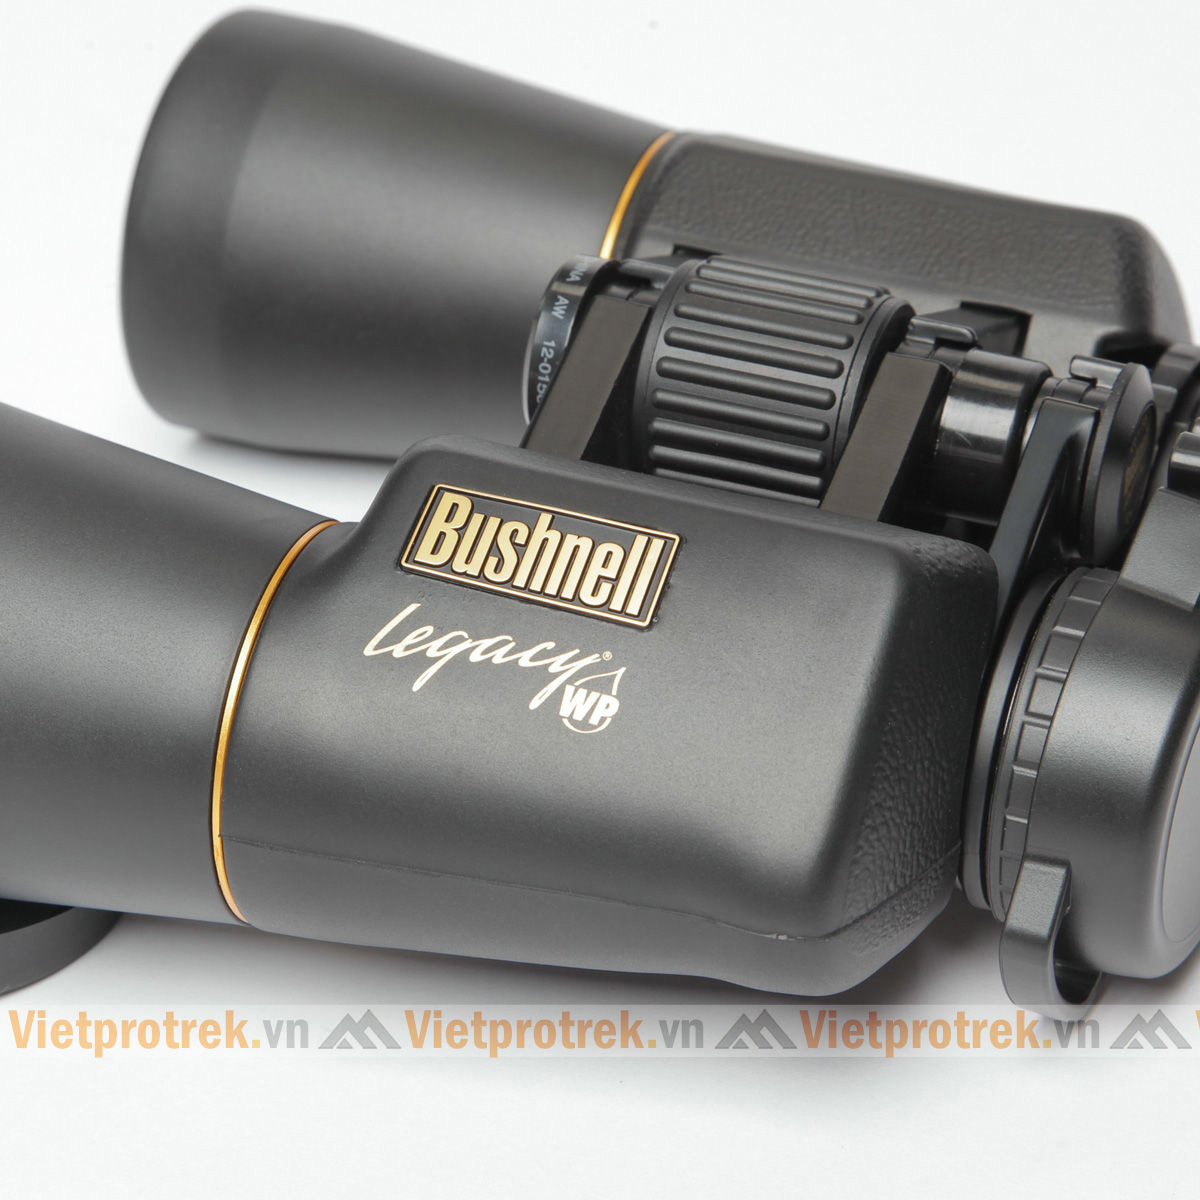 Bushnell Legacy WP 10x50mm